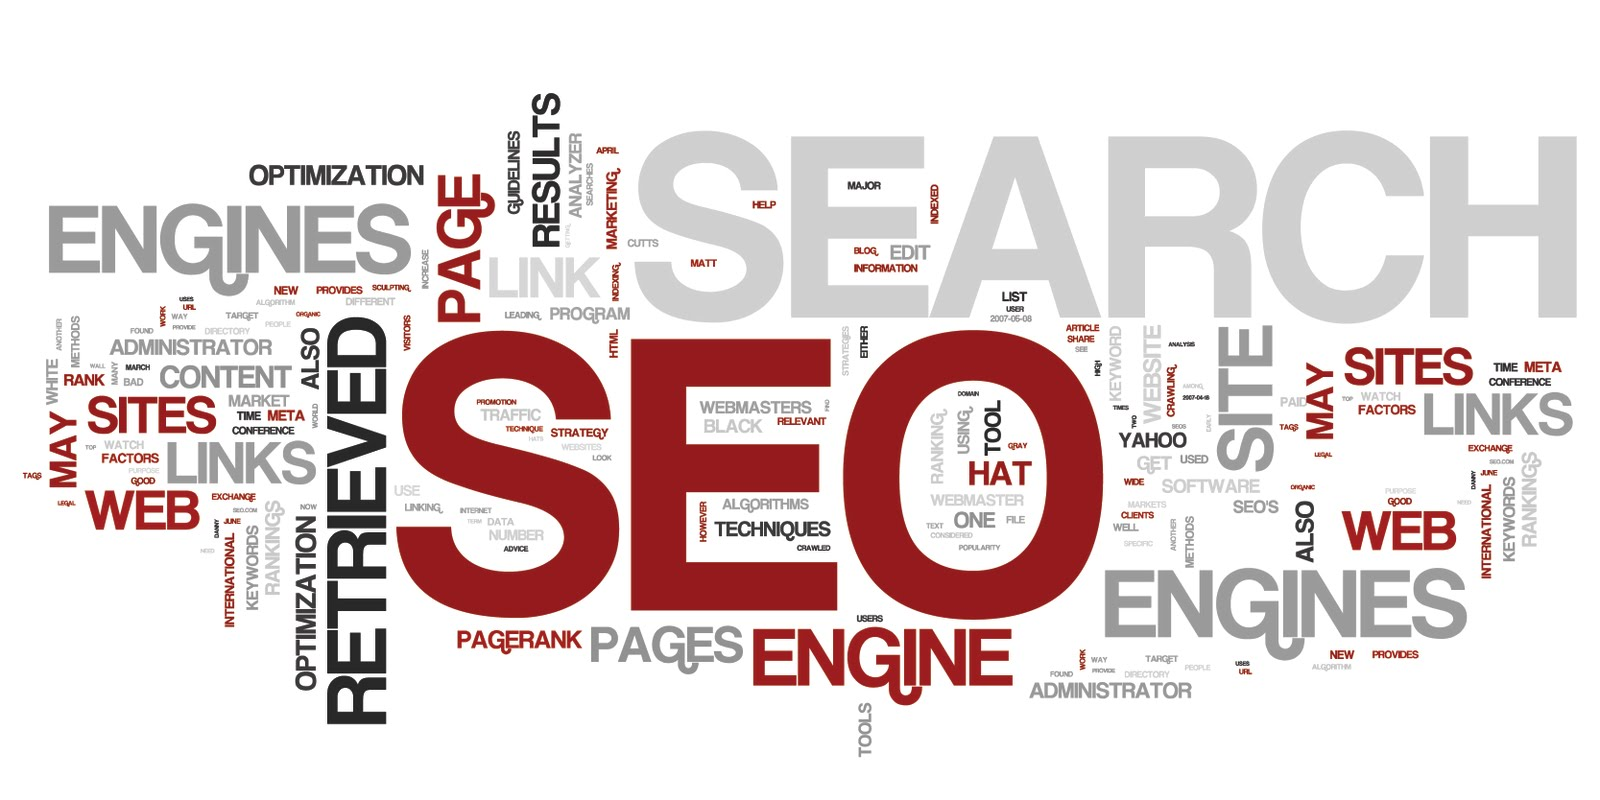 SEO Services in Noida,Search Engine Optimization in Noida,SEO Services in Uttar Pradesh India,SEO Services,SEO in Noida,Search Engine Optimization,SEO in Uttar Pradesh India,Software,Seo,Hosting,Website,web design,web development company,web developer,website design,domain registration,mobile application development,search engine optimization,web development,seo services,software development, web design company,ecommerce website,cloud hosting,cheap web hosting,email hosting,graphic designers,search engine marketing Noida Uttar Pradesh.